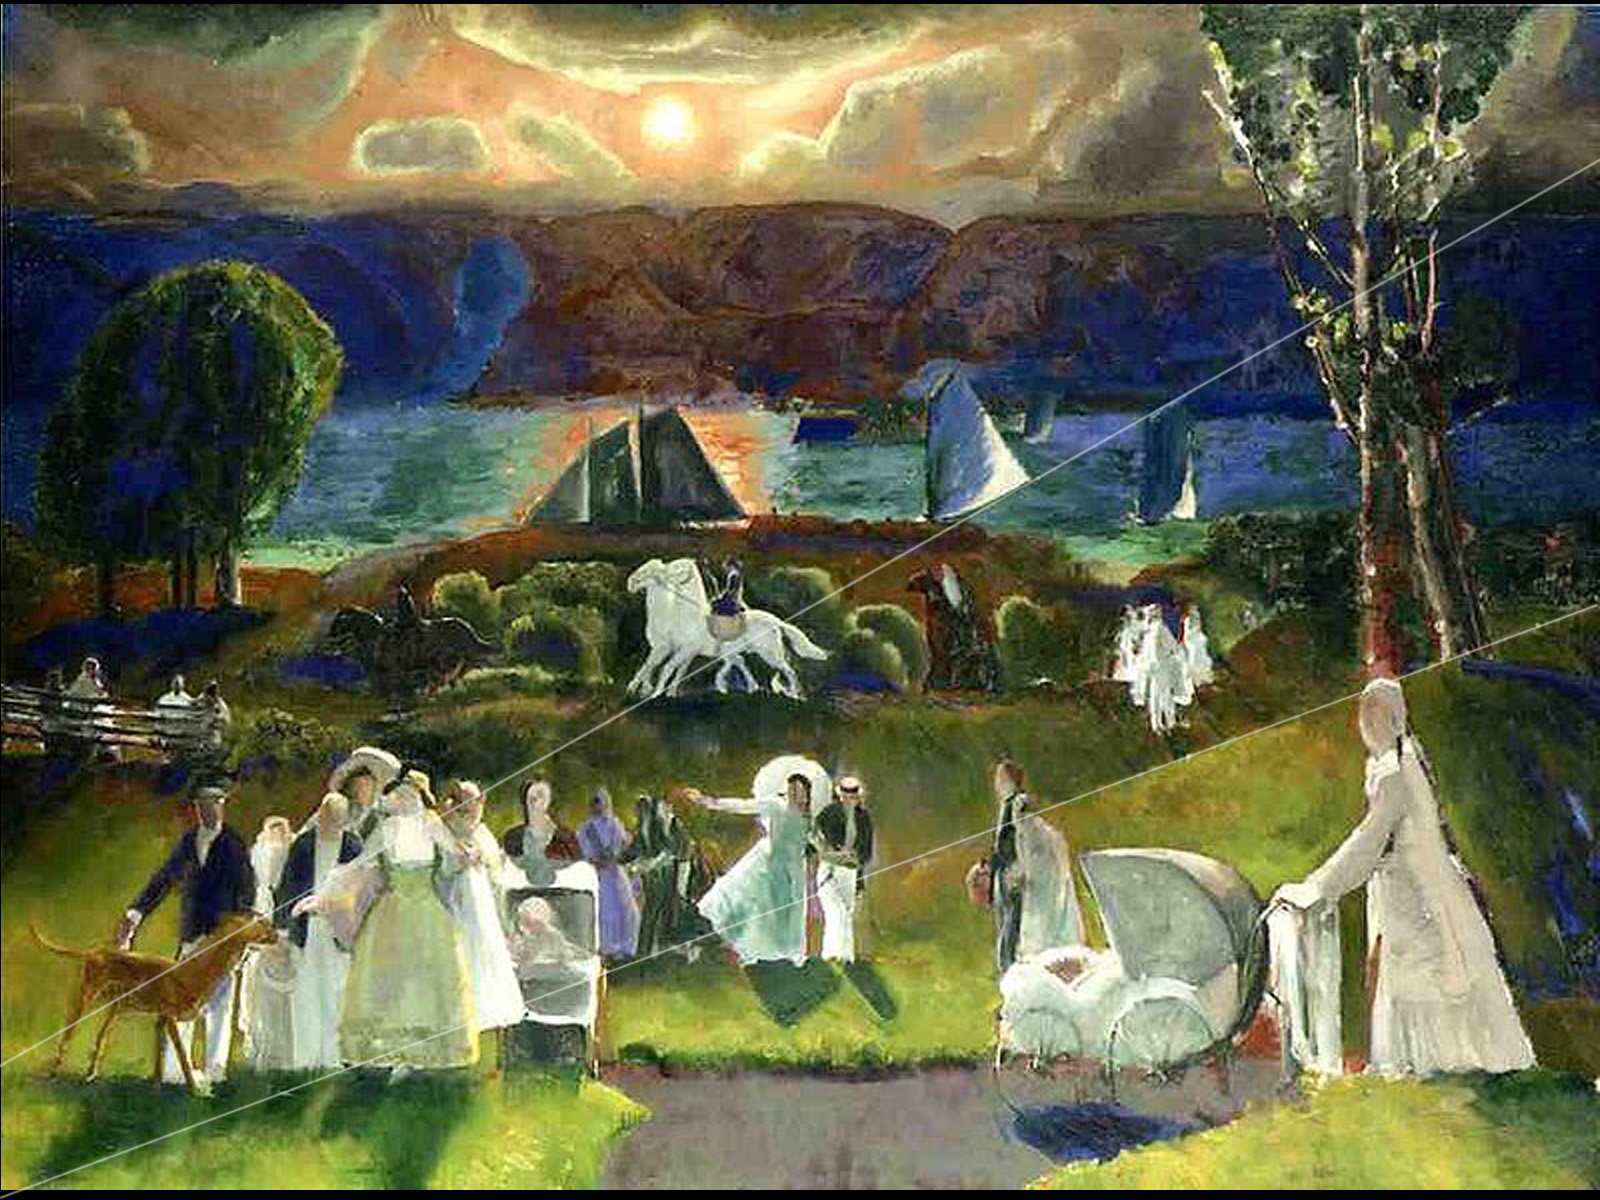 Starr Review: George Bellows and the American Experience